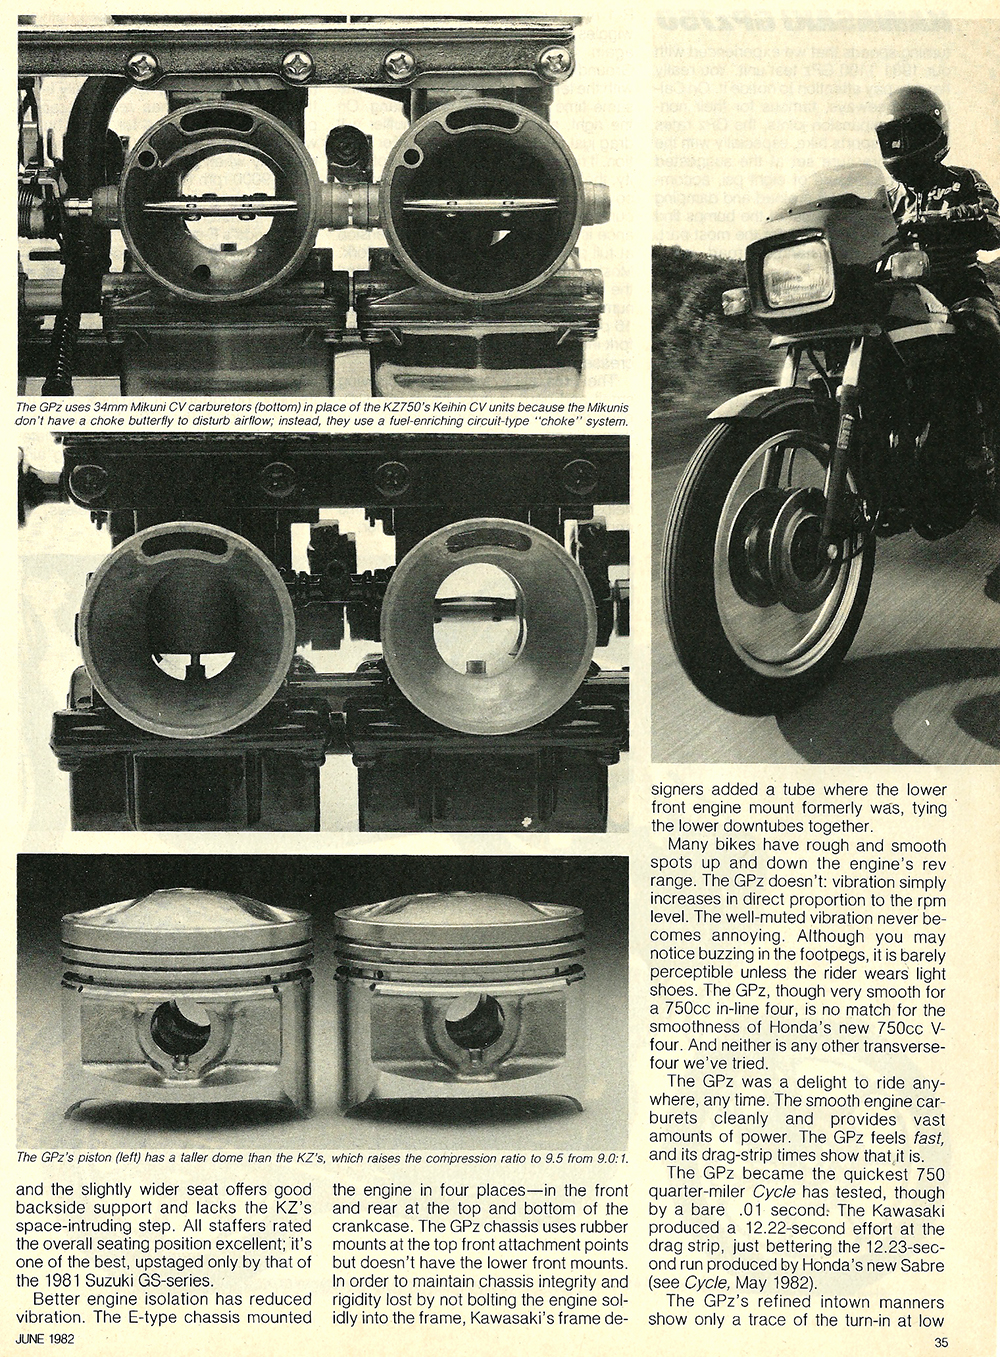 1982 Kawasaki Gpz750 road test 06.jpg